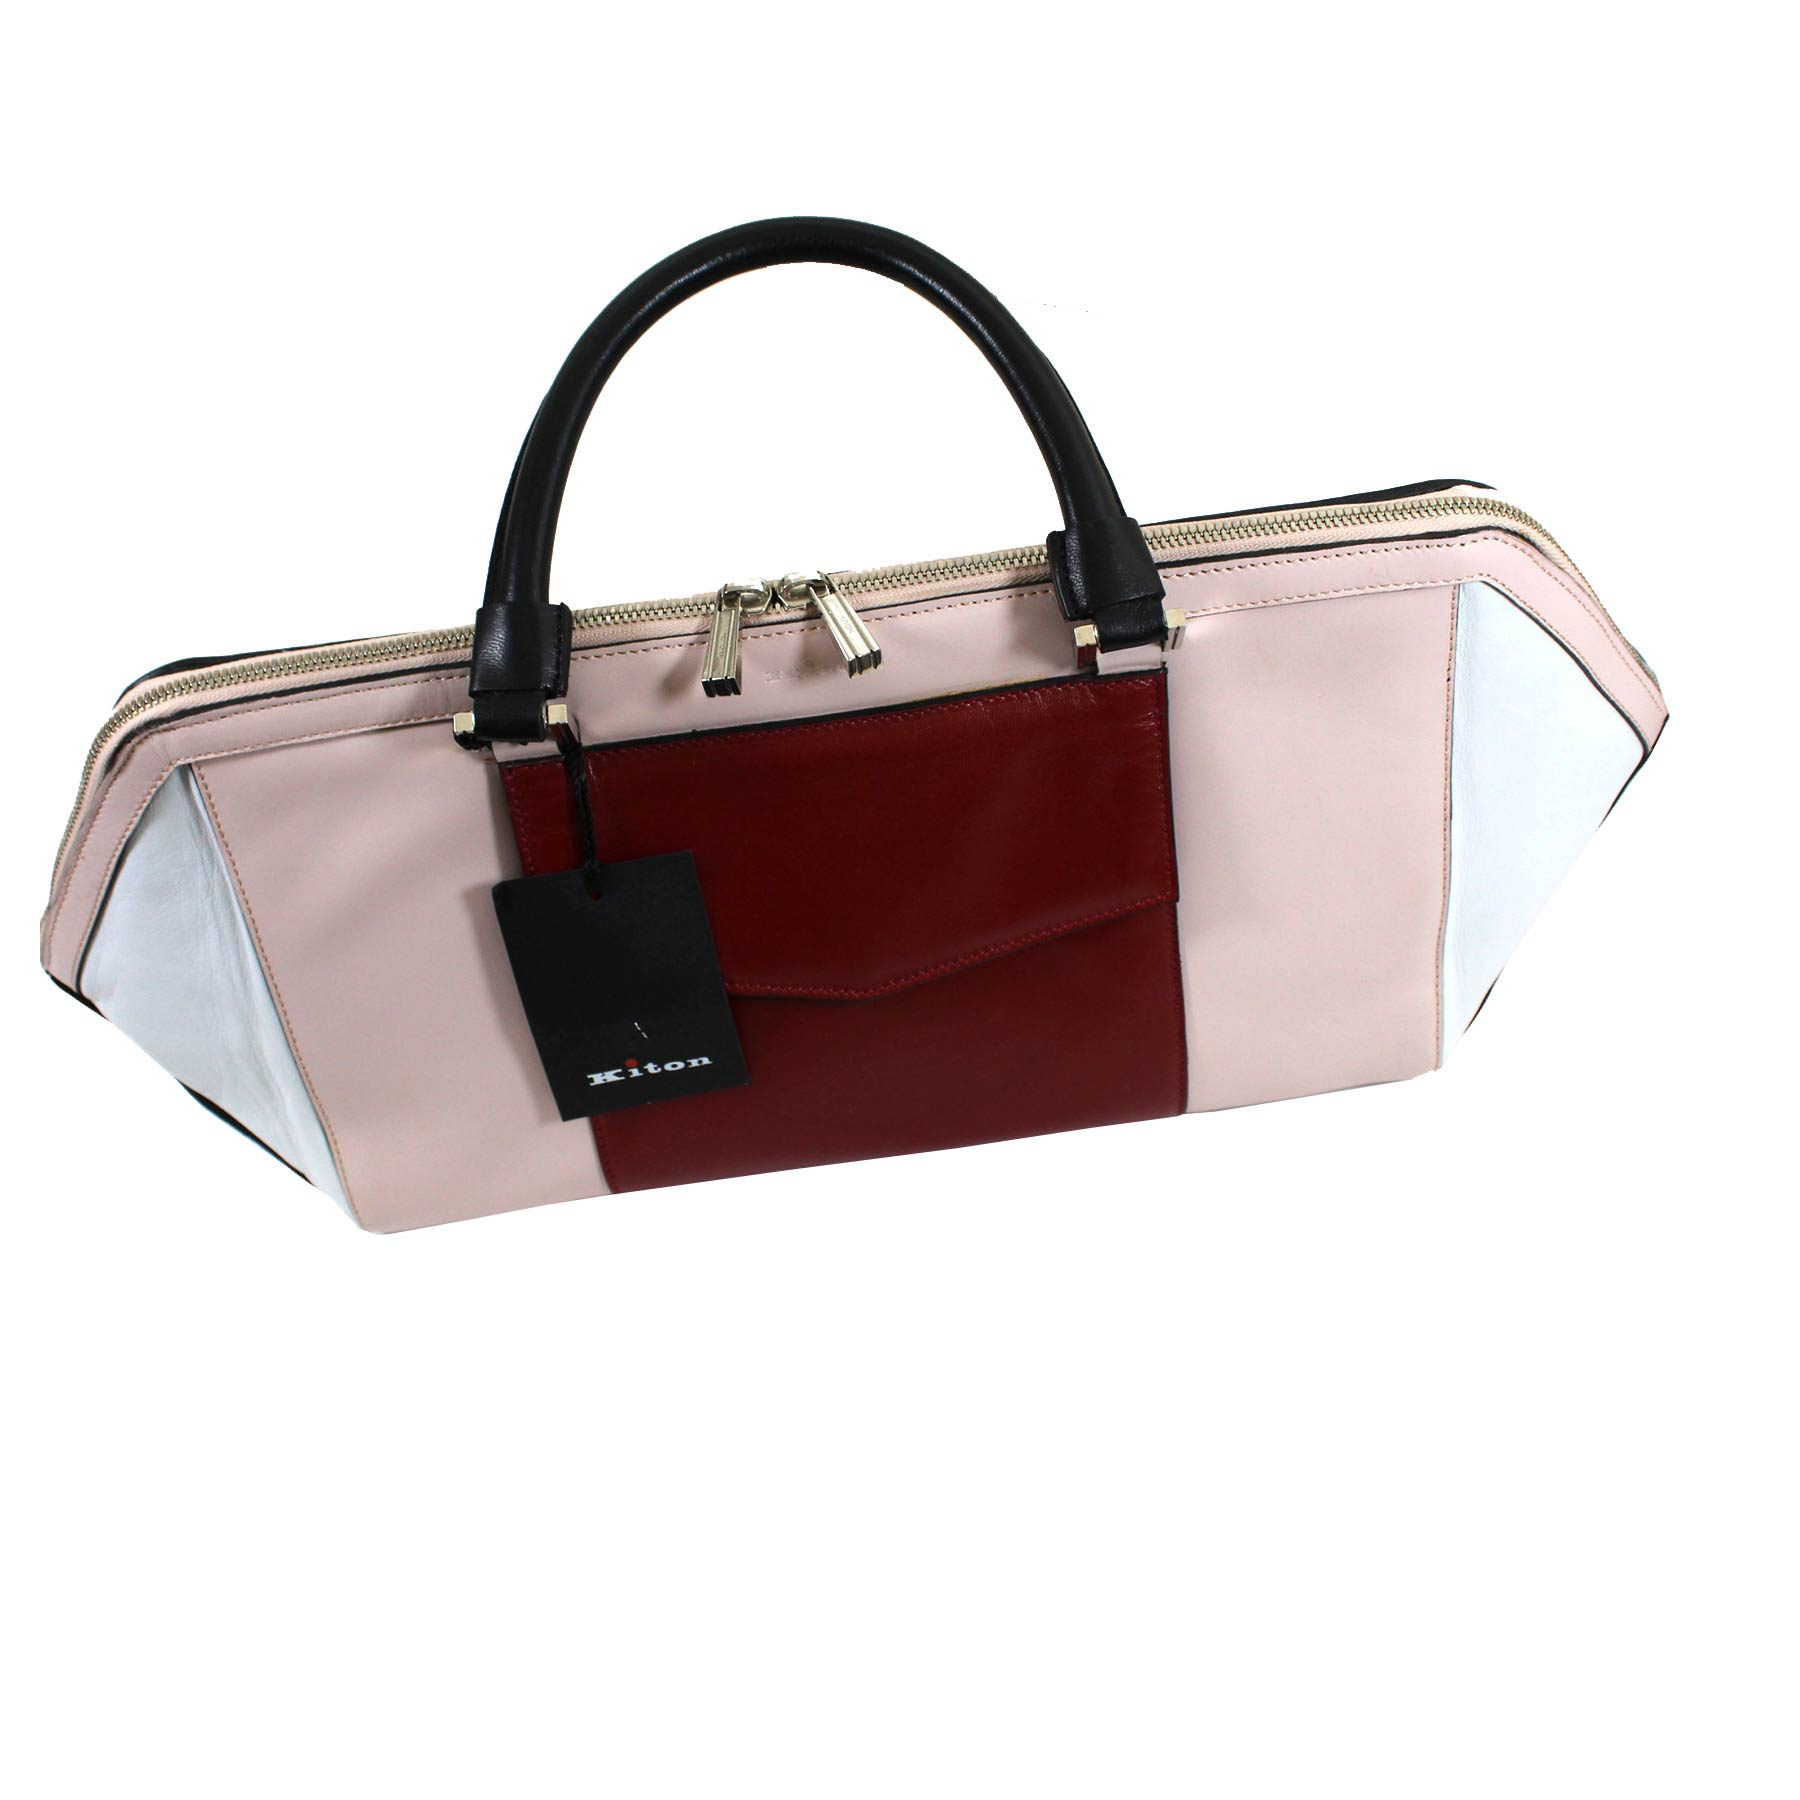 Kiton Handbag White Pink Red Leather Luxury Bag SALE